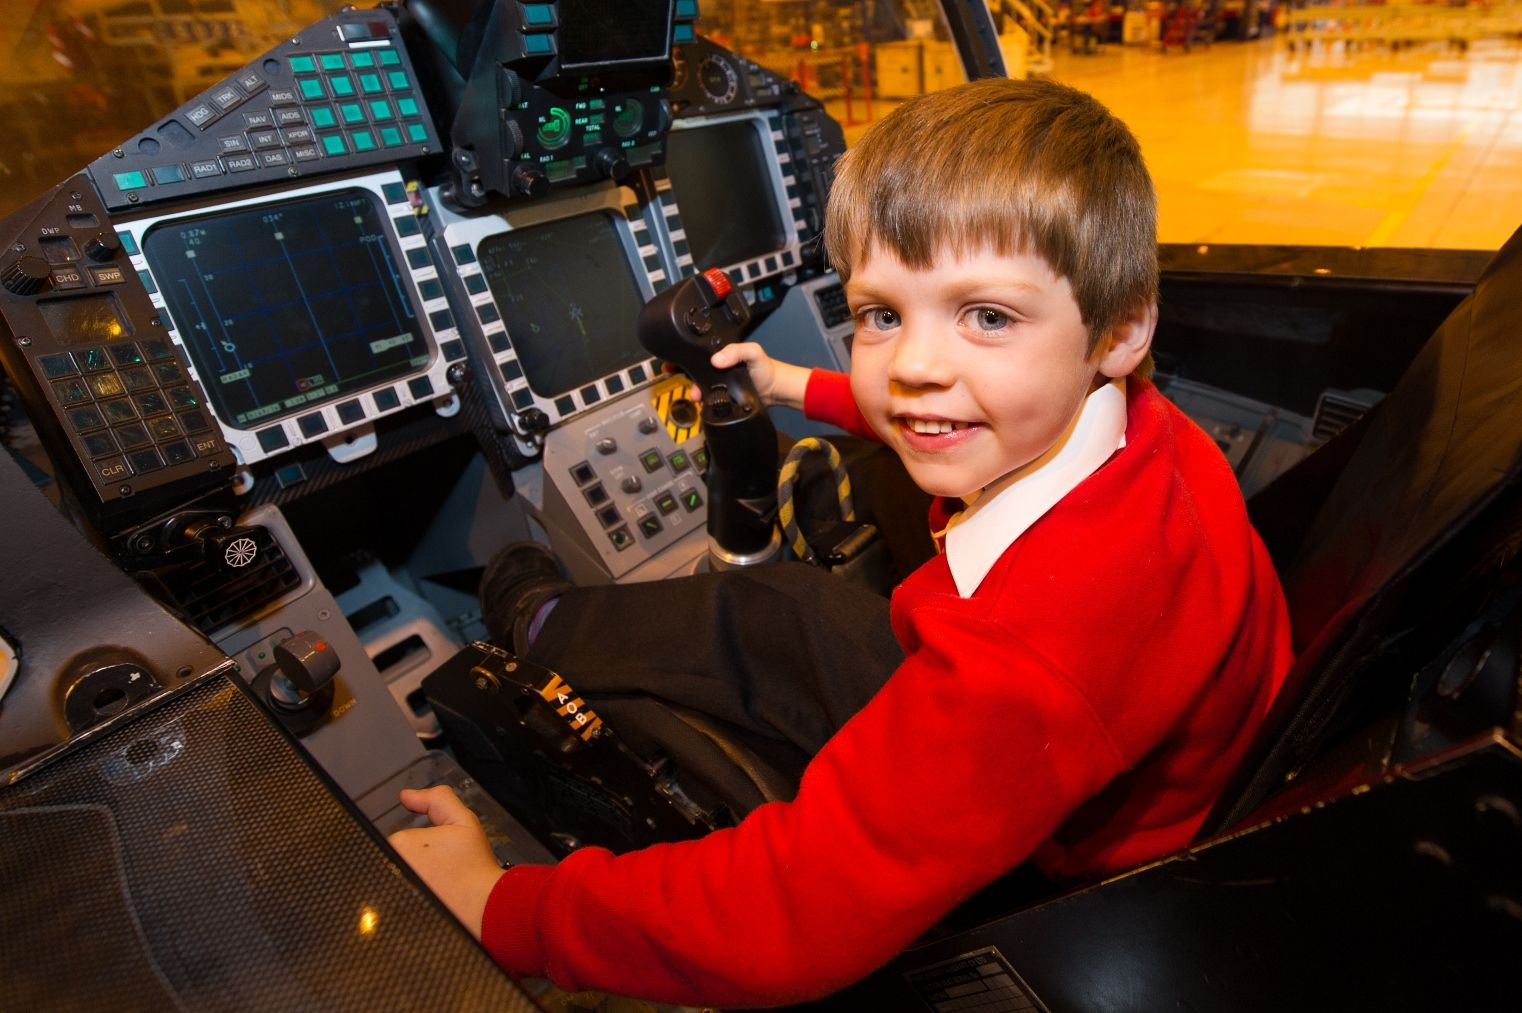 #YouAreWhatYouReadHelp them get the best start. 5 year old Ben sees what being a pilot would be like in the Typhoon Fighter flight simulator at BAE Warton. Using the library will help him achieve his dream.